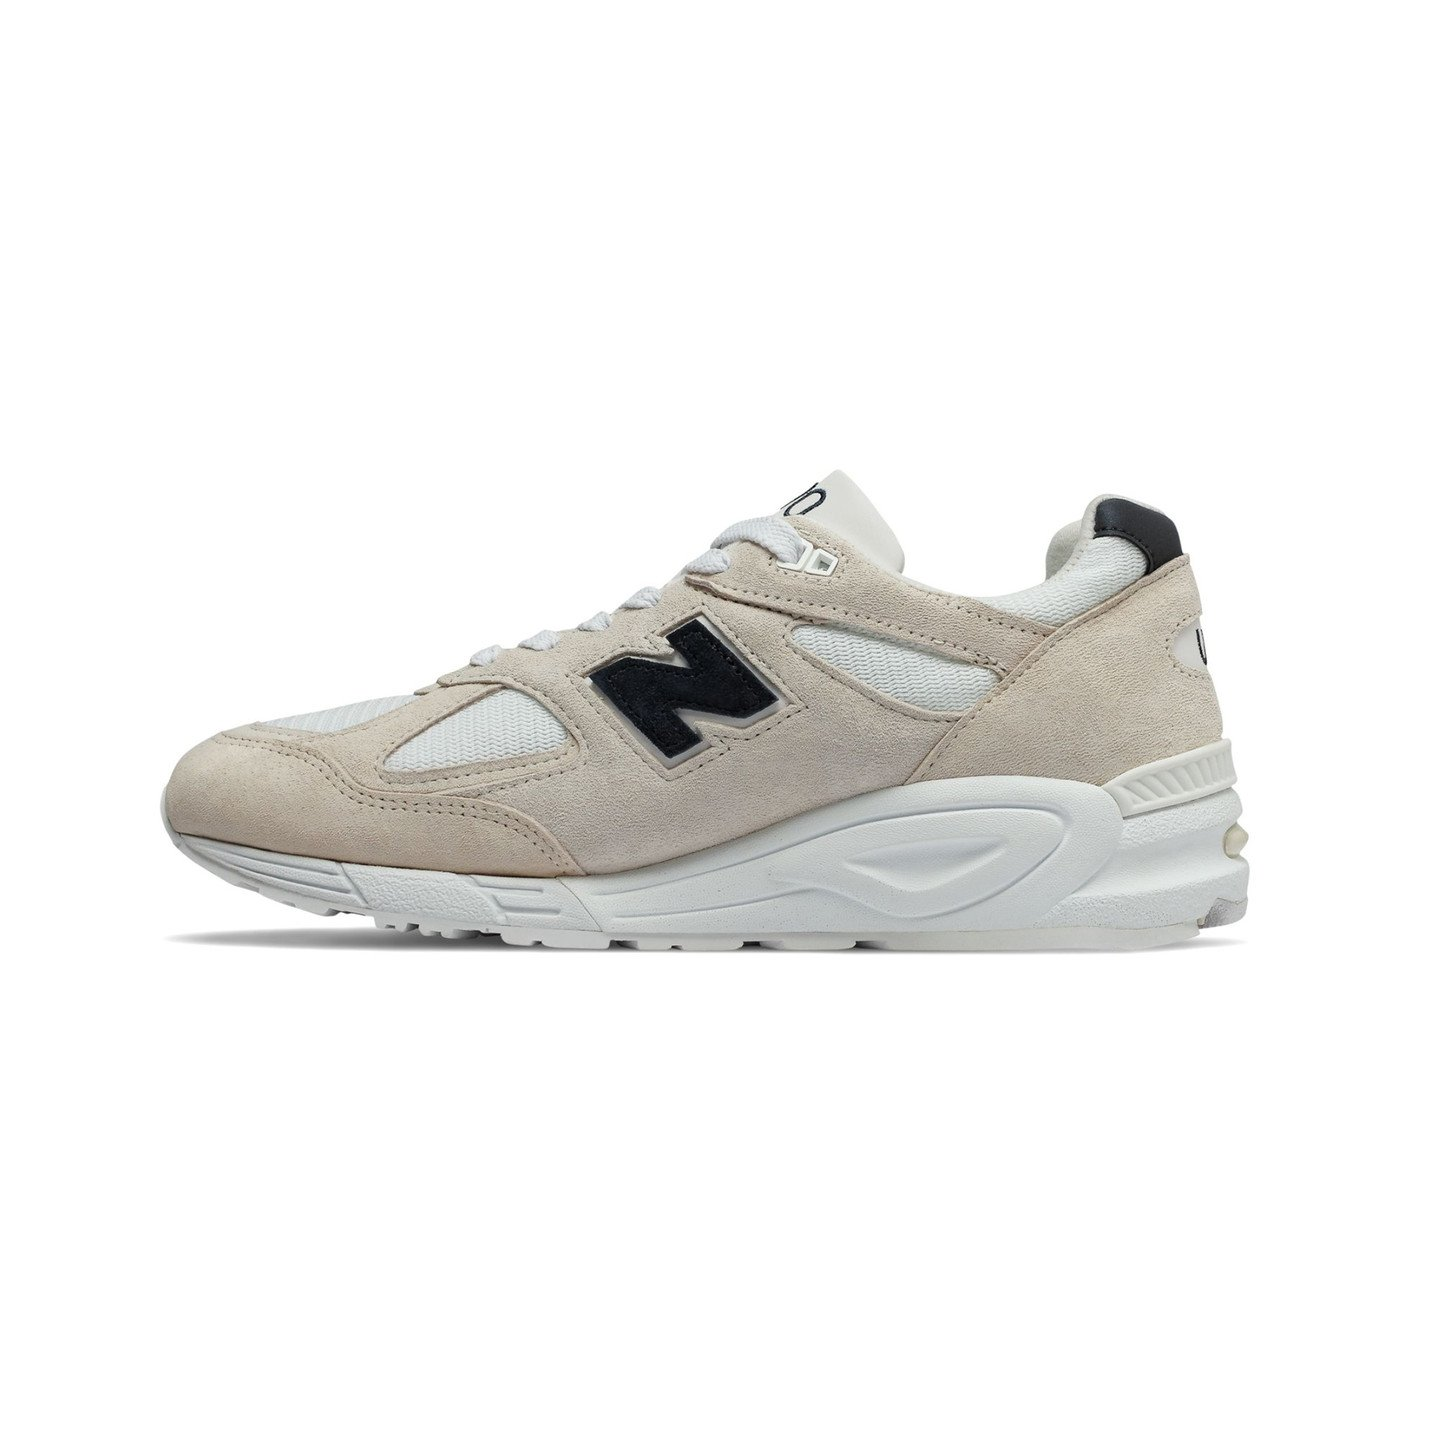 New Balance M990 V2 - Made in USA White / Off White / Navy M990WE2